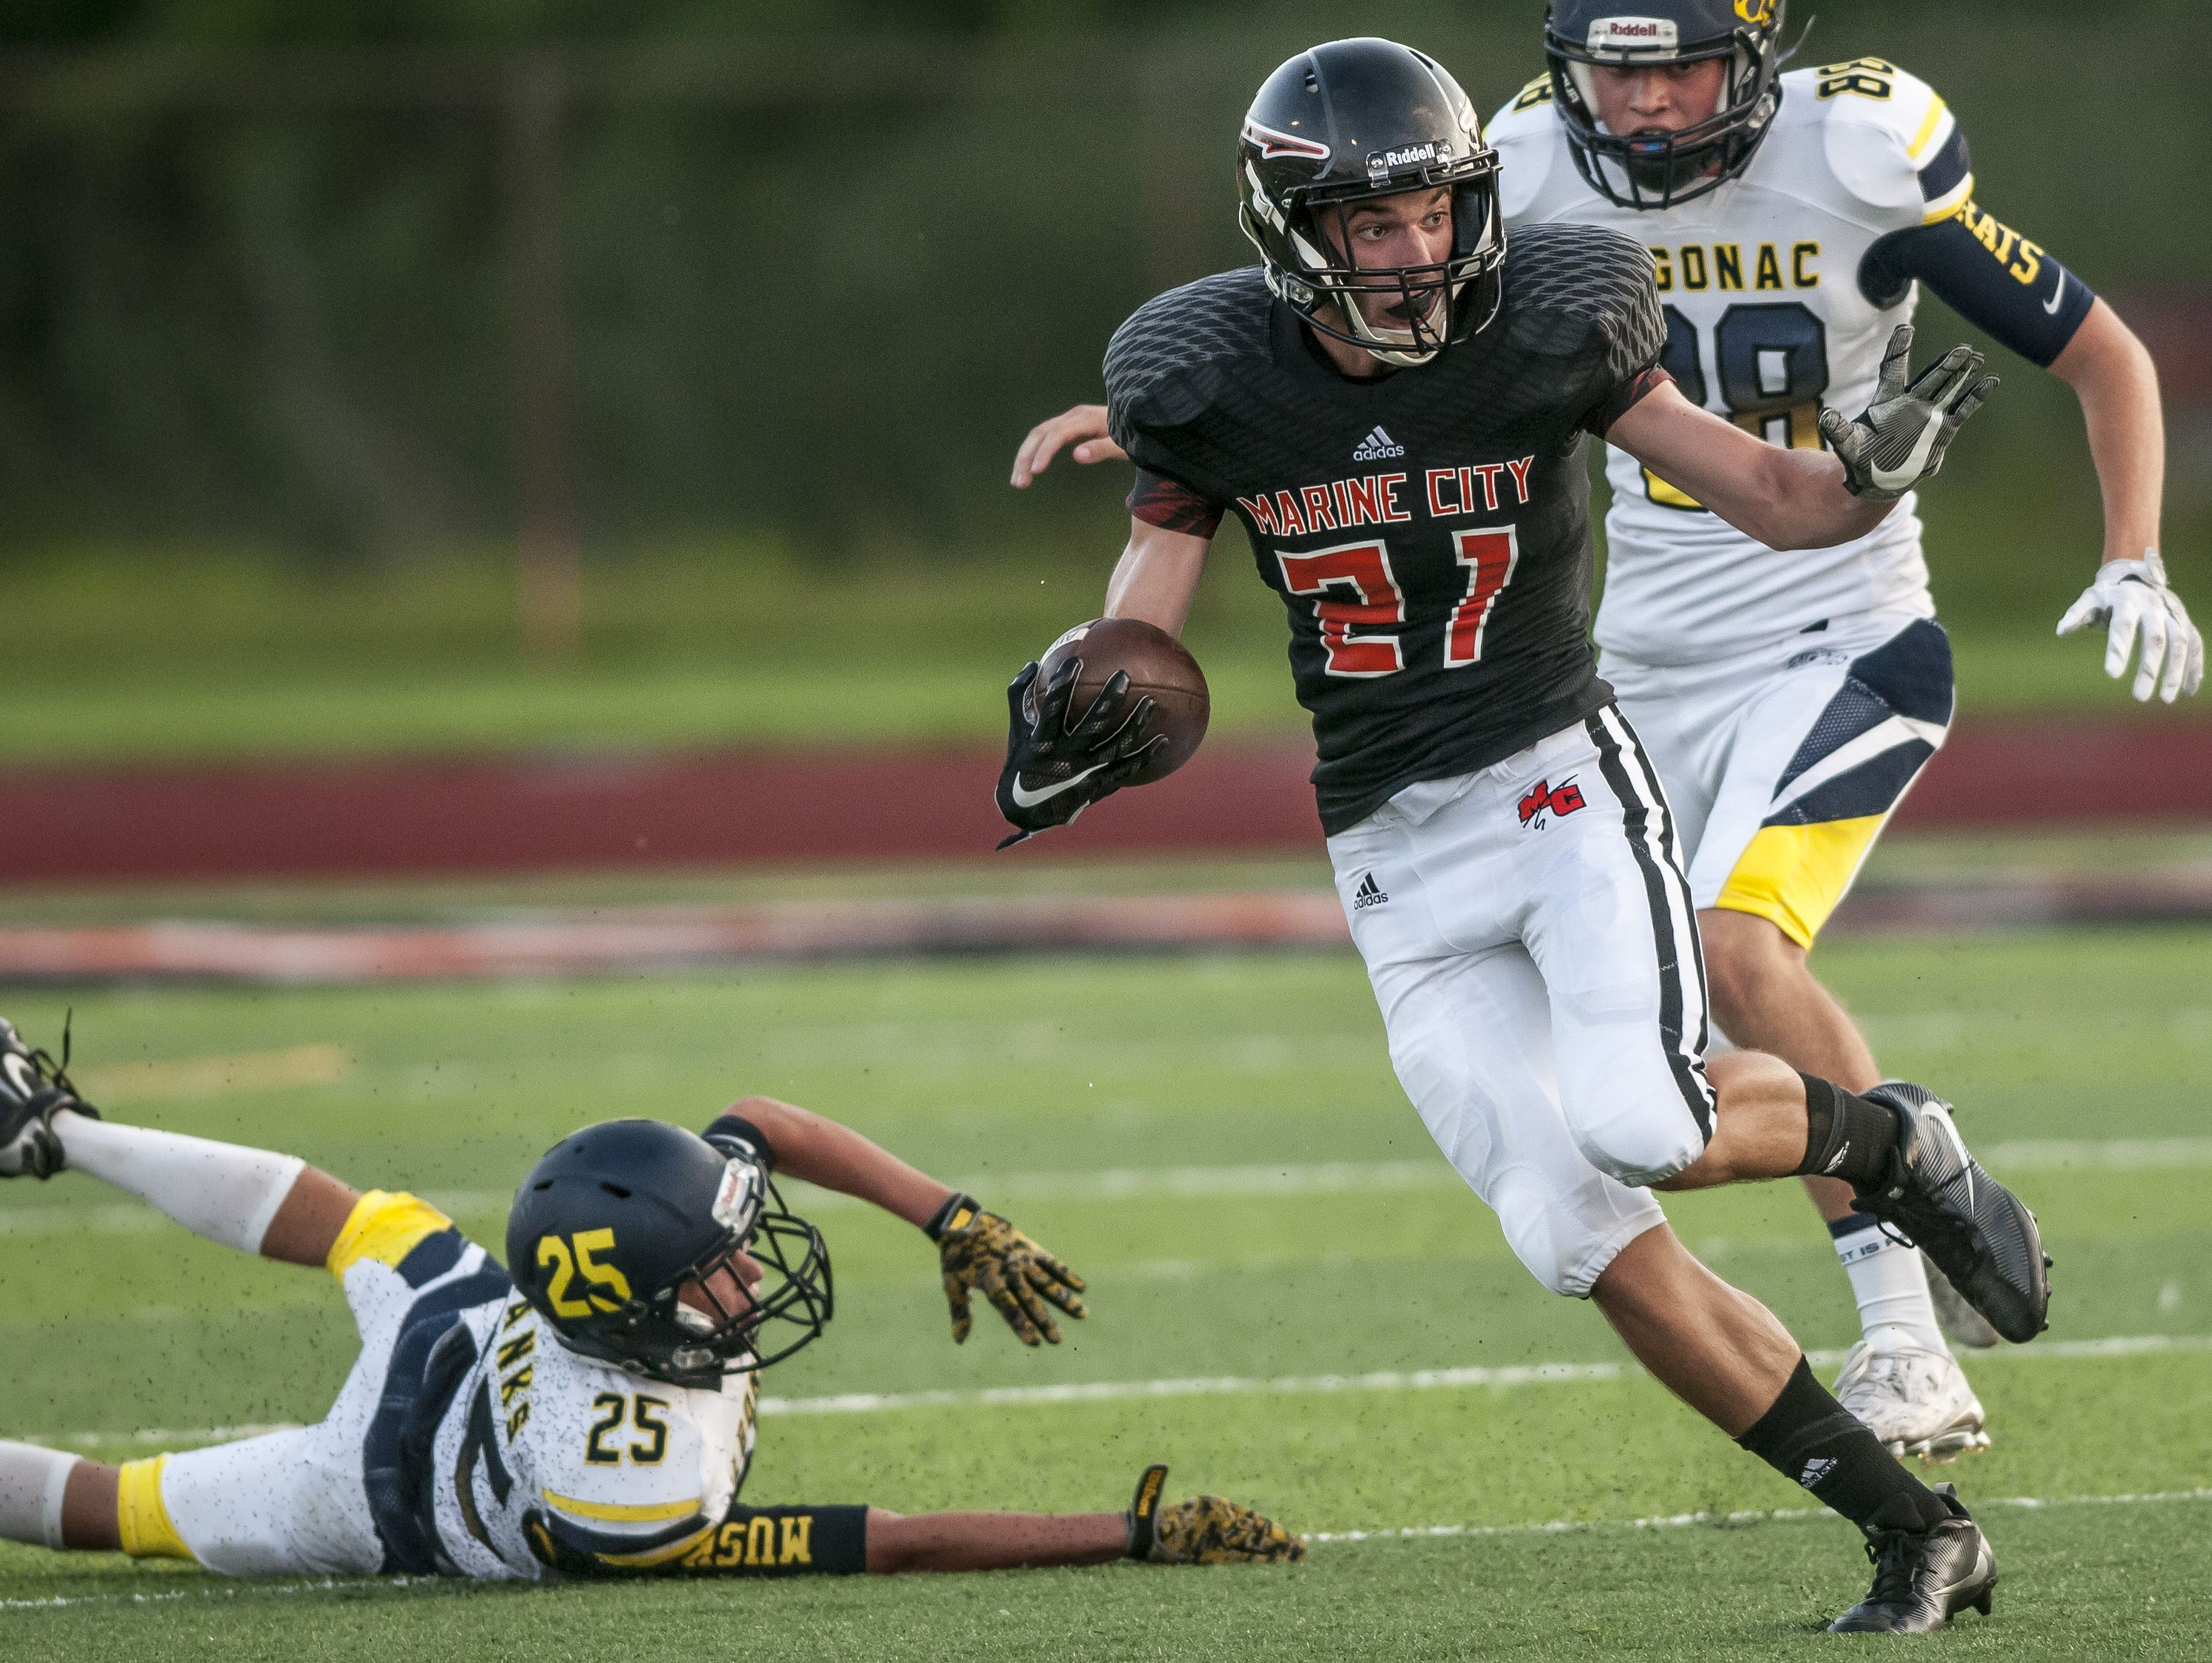 Marine City's William Pastalis breaks past several Algonac defenders as he drives the ball down field during a football game Thursday, August 25, 2016 at East China Stadium.